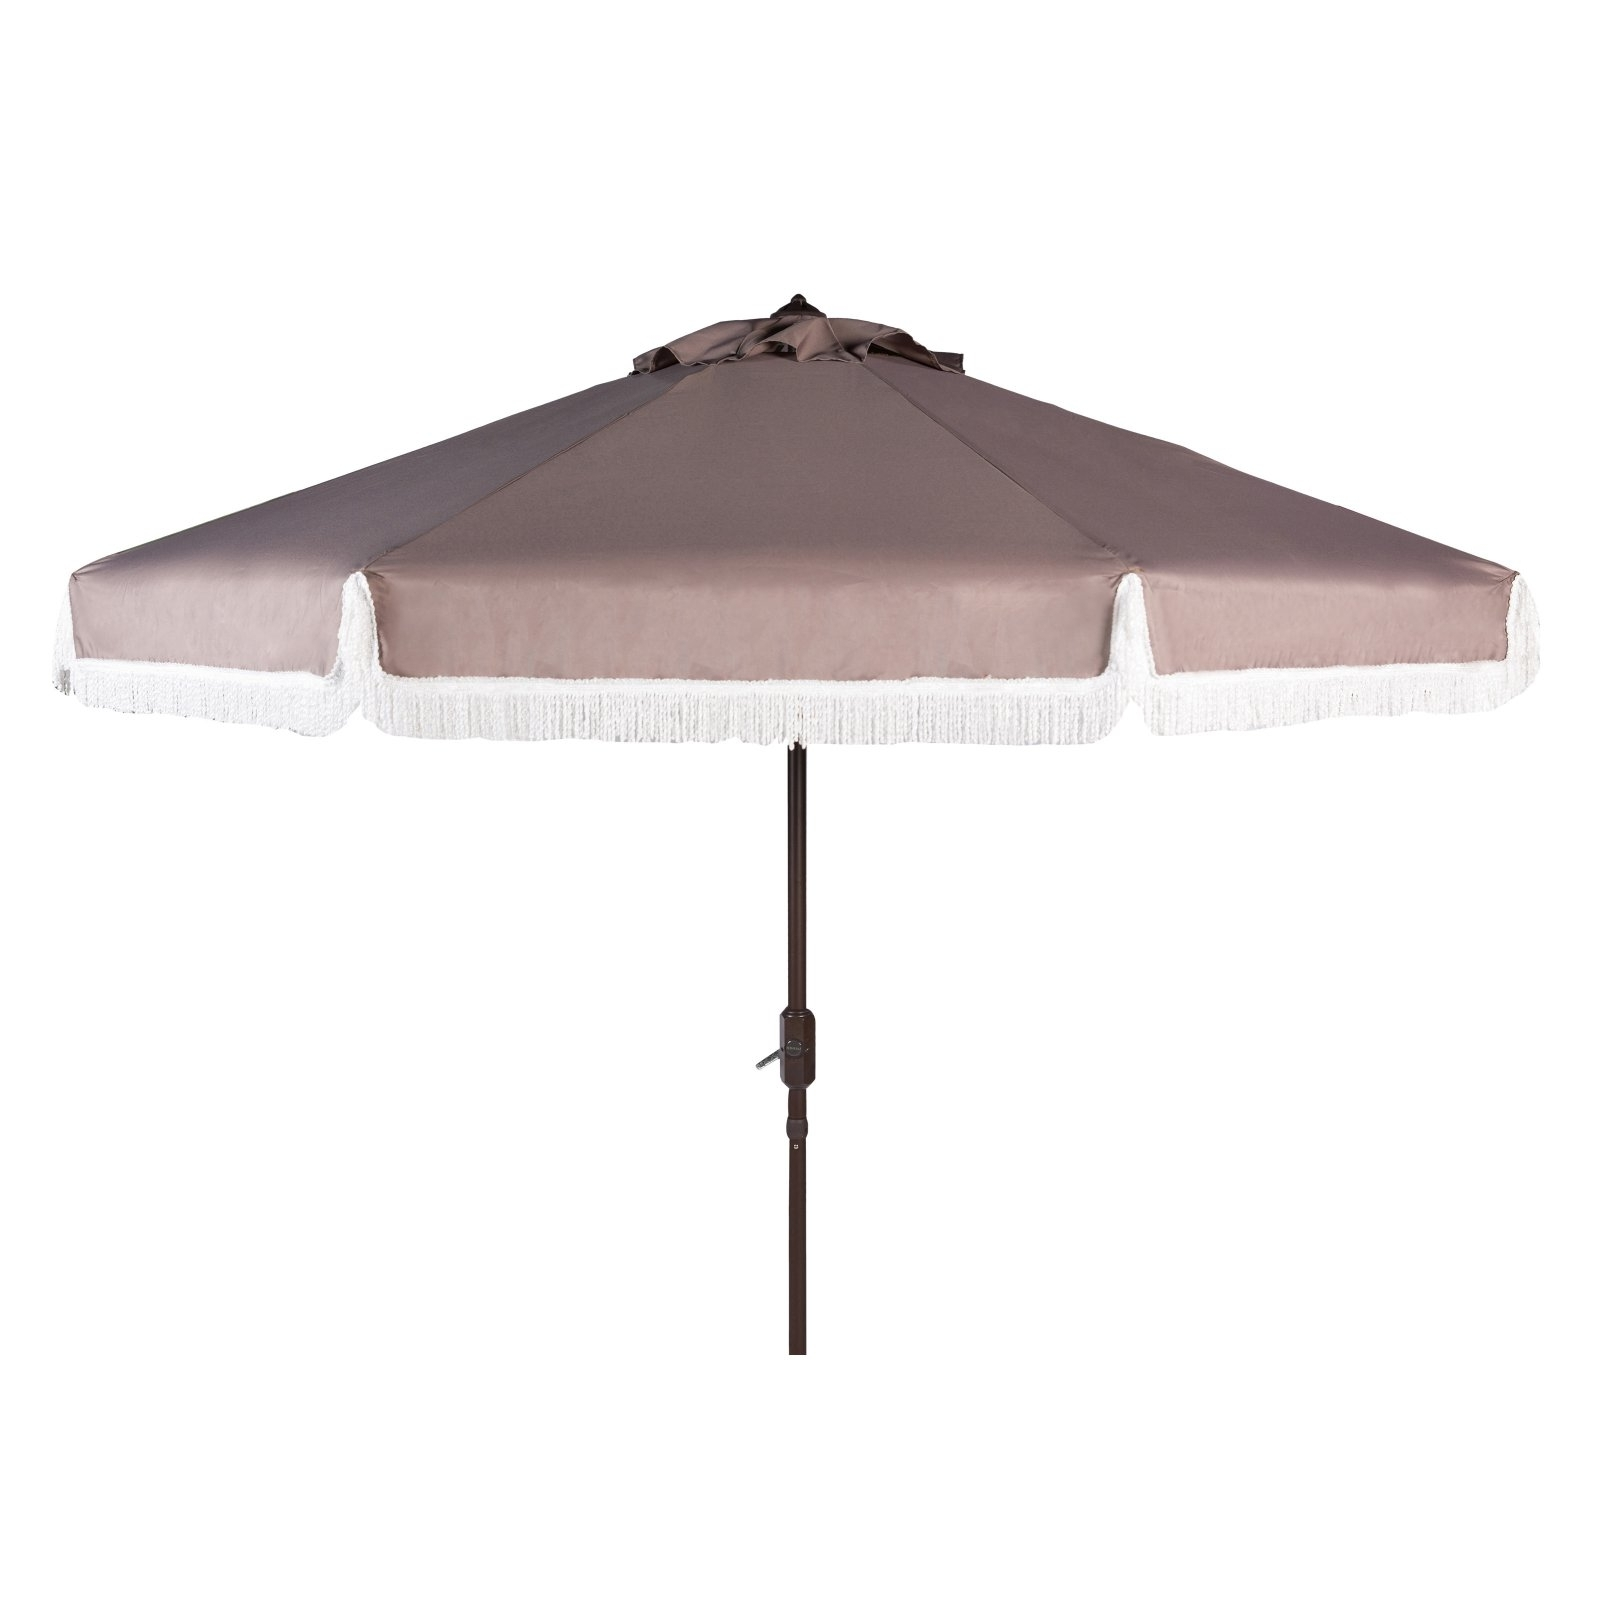 Safavieh Milan Fringe 9' Crank Outdoor Umbrella, Multiple Colors Intended For 2019 Patio Umbrellas With Fringe (View 13 of 20)